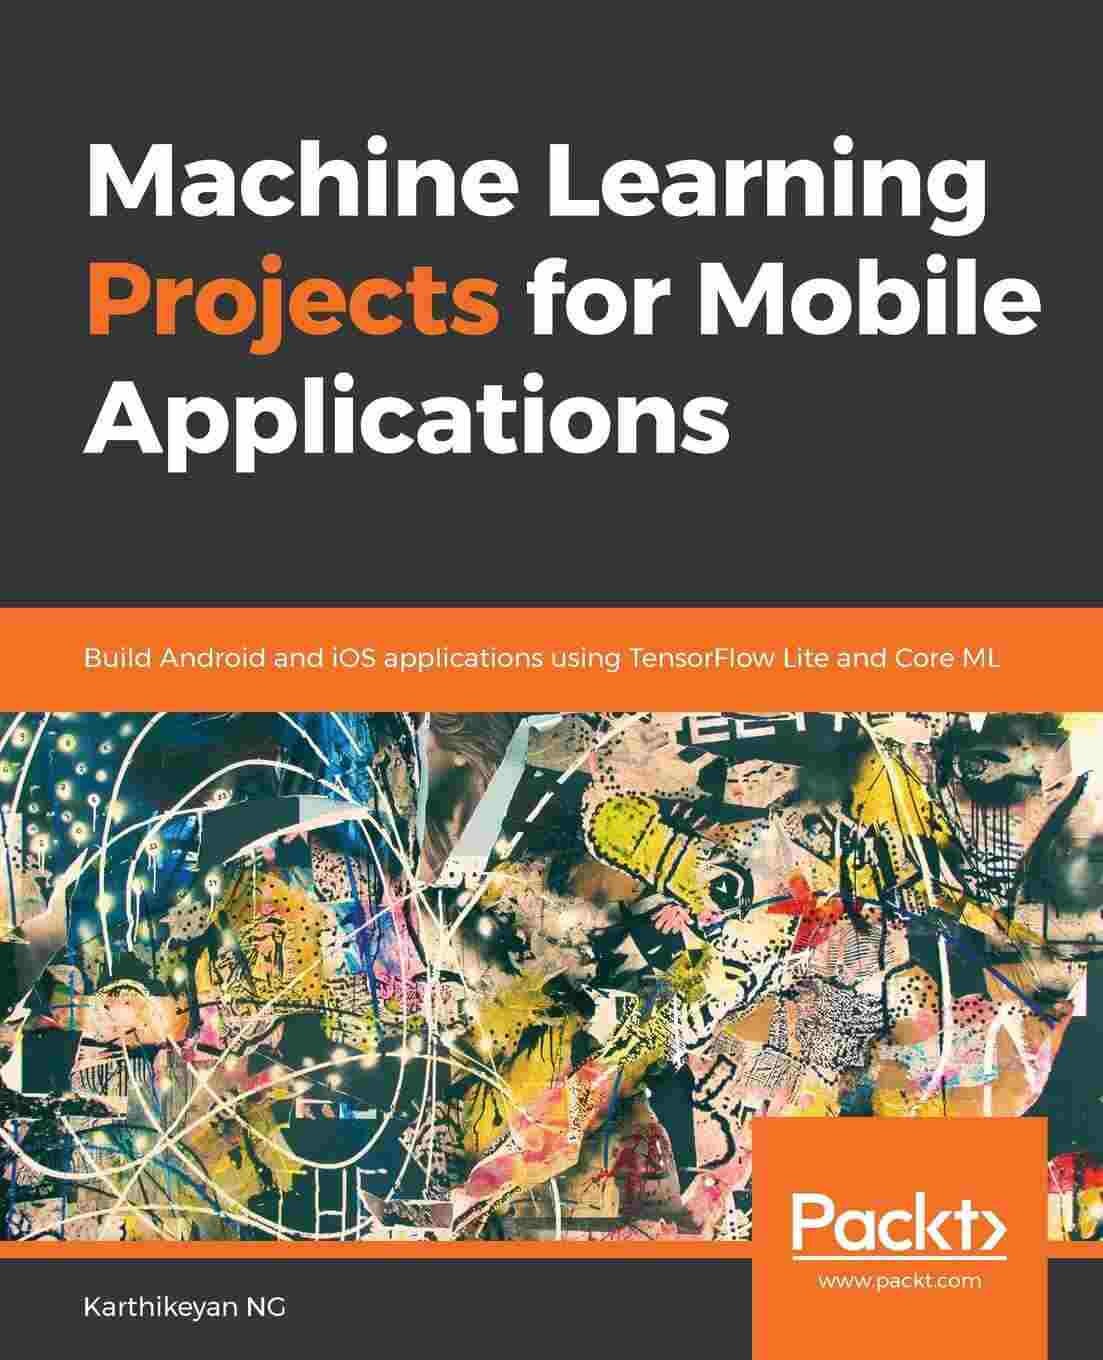 Machine Learning Projects for Mobile Applications: Build Android and iOS applications